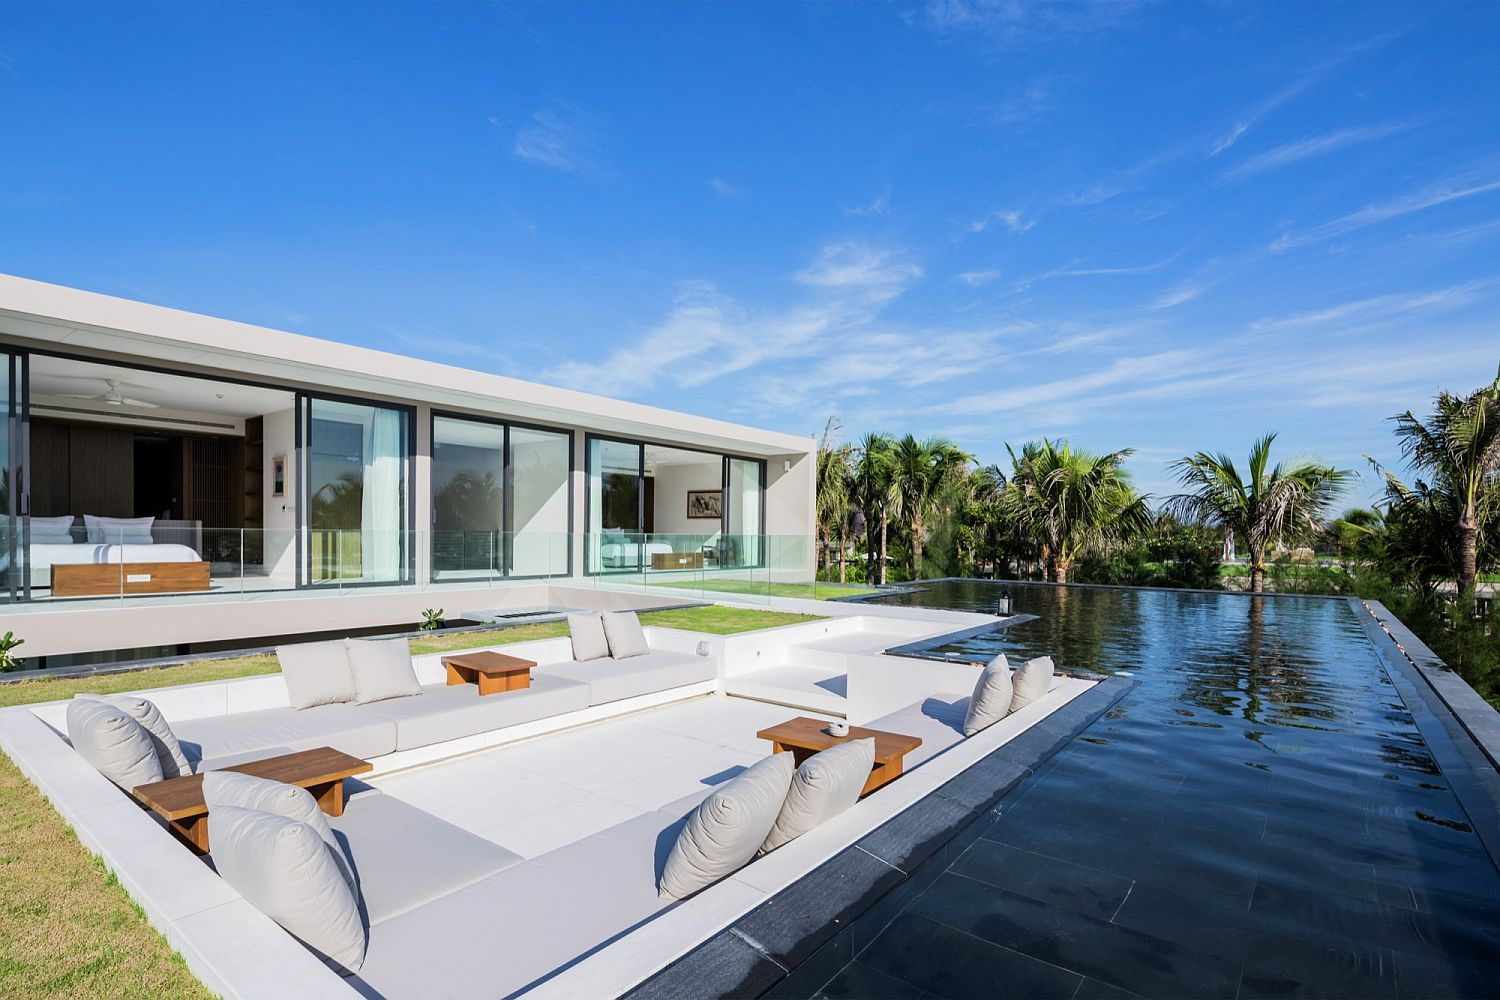 Luxurious sunken lounge with sea views and infinity pool next to it